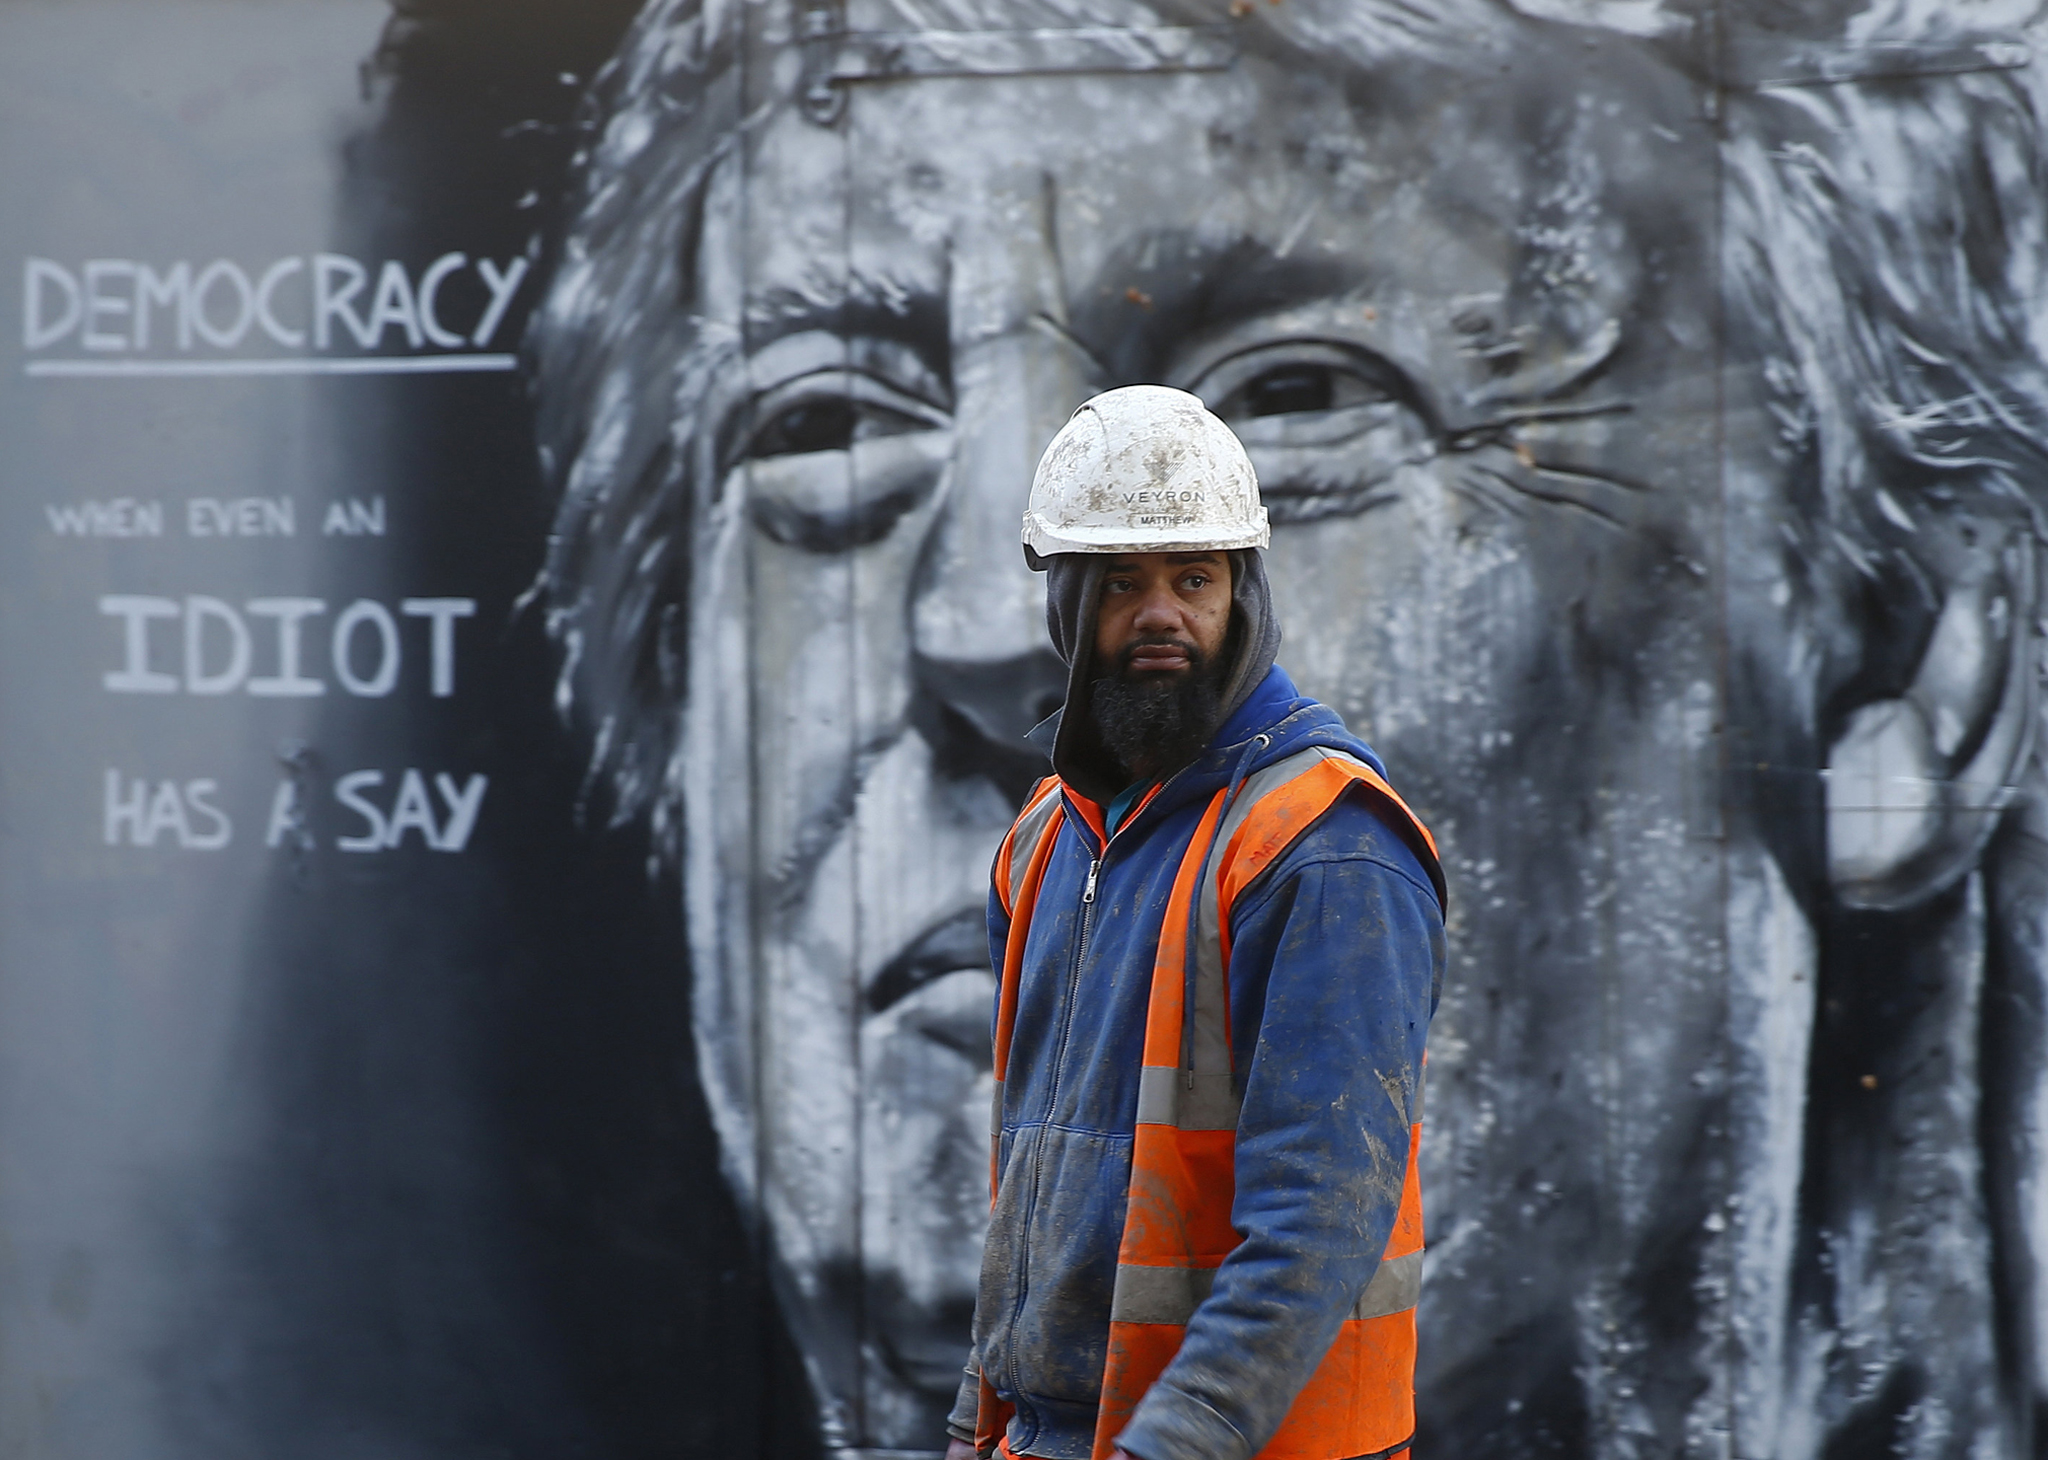 A construction worker stands in front of a piece of street art portraying prospective U.S. Presidential candidate Donald Trump, in east London...A construction worker stands in front of a piece of street art portraying prospective U.S. Presidential candidate Donald Trump, in east London, January 28, 2016. An online petition to bar Trump from entering the United Kingdom recently triggered a debate in Parliament after if was signed by over 500,000 people. REUTERS/Andrew Winning EDITORIAL USE ONLY. NO RESALES. NO ARCHIVE